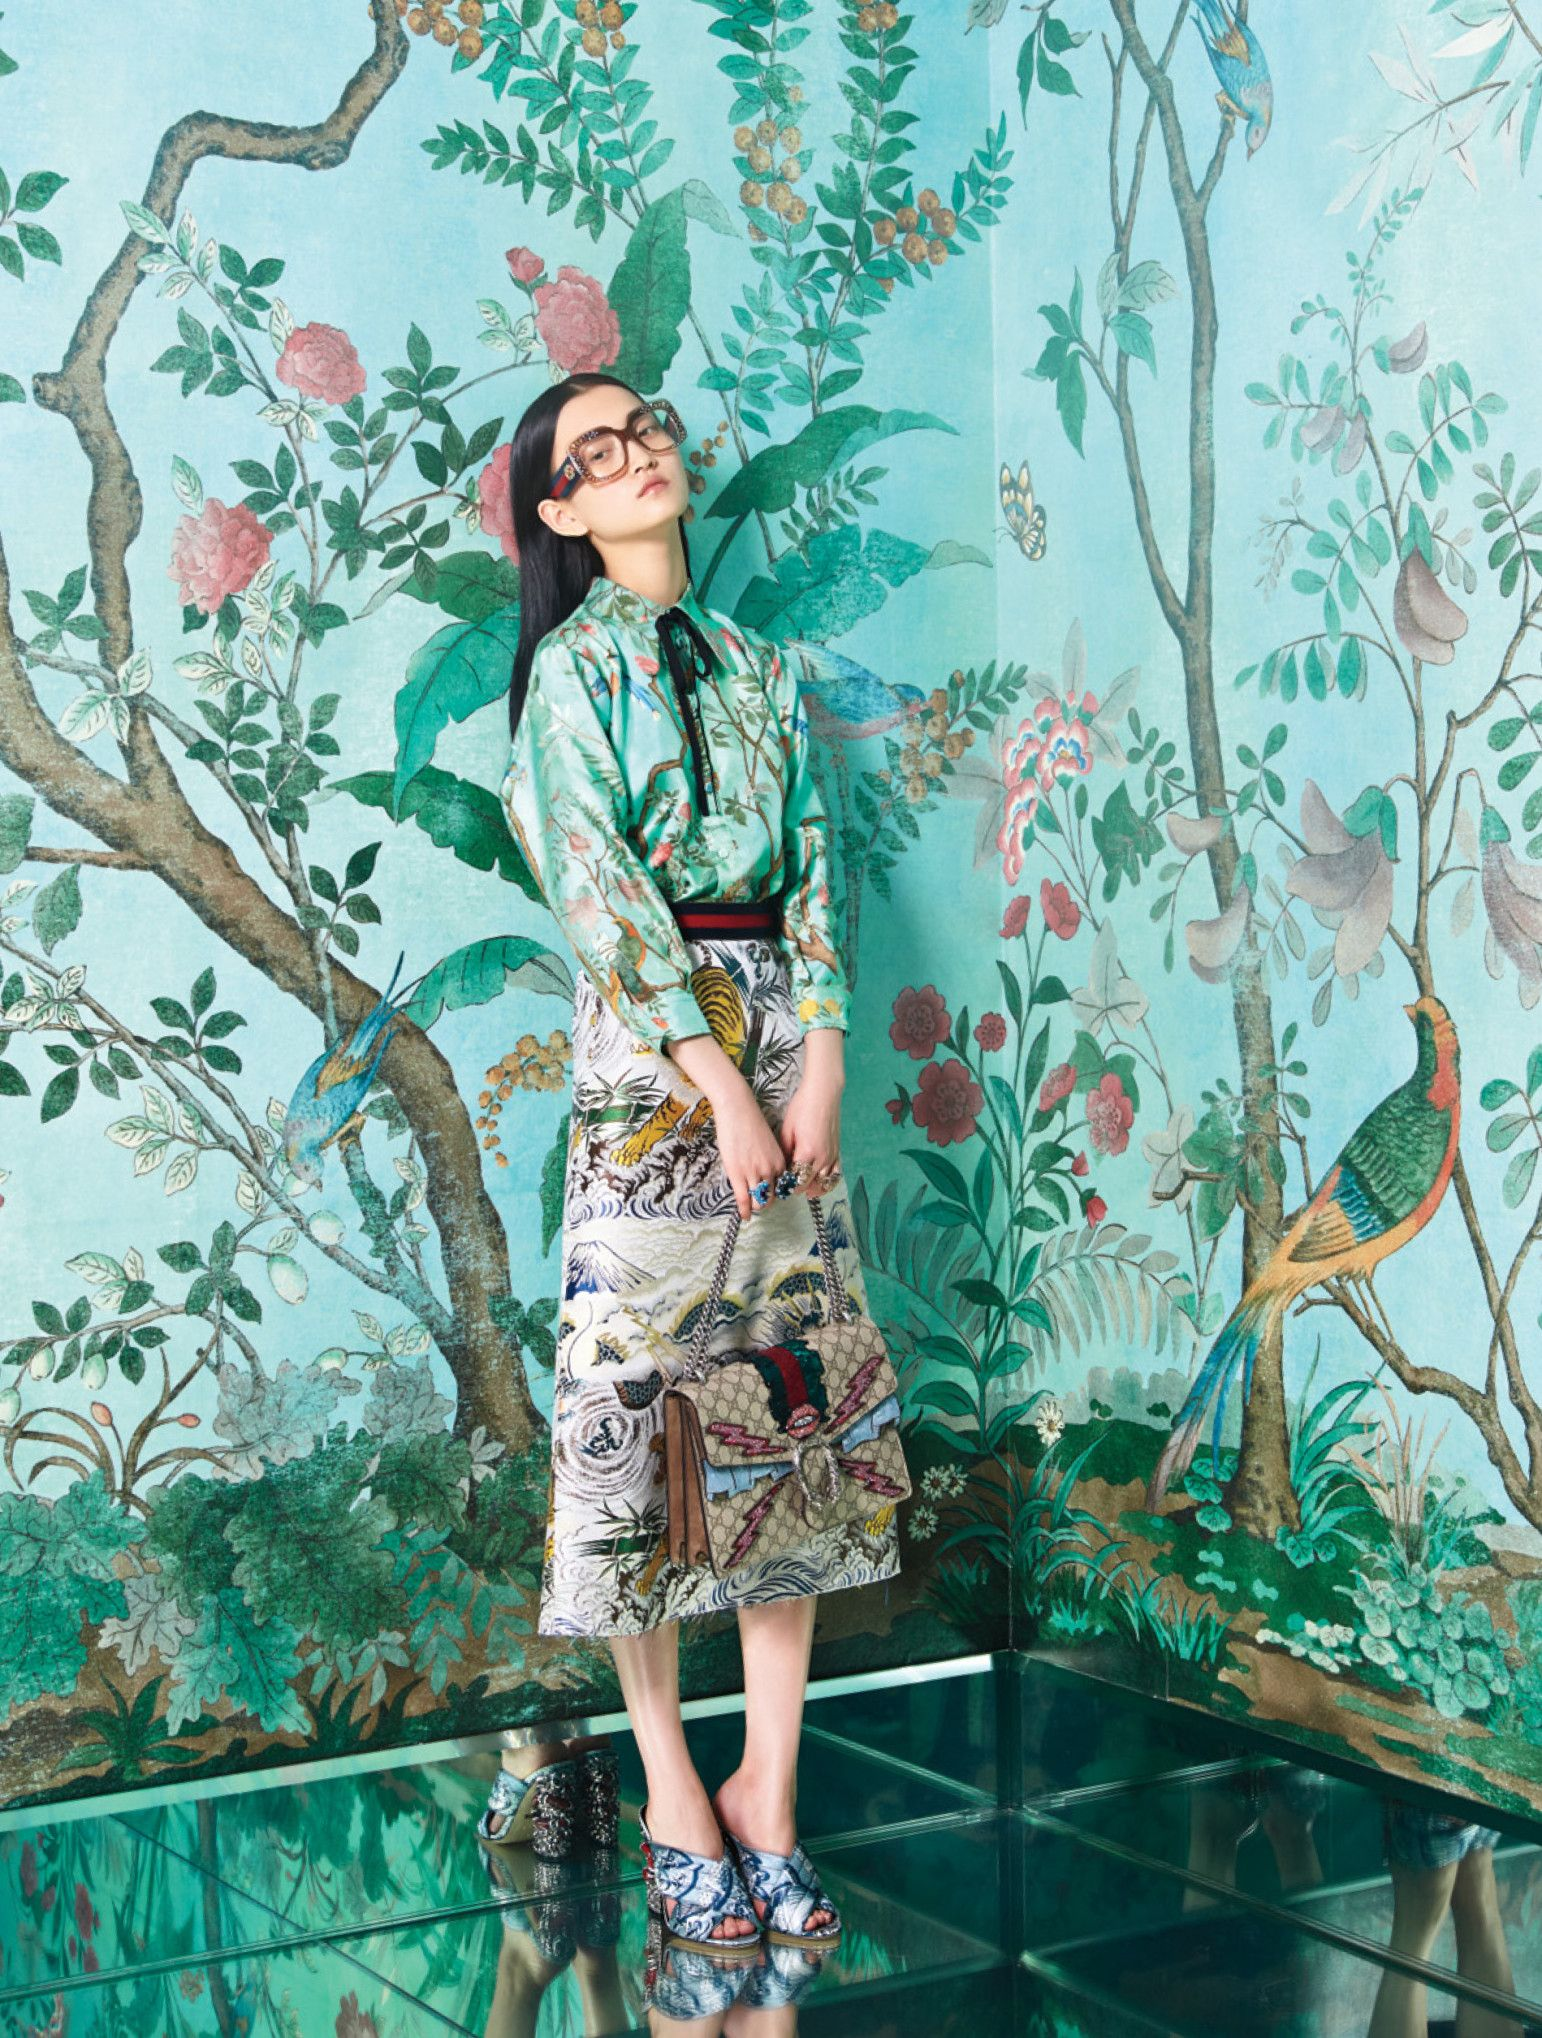 Glam Fall Background Wallpaper Gucci S Alessandro Michele The New Romantic In The Mood